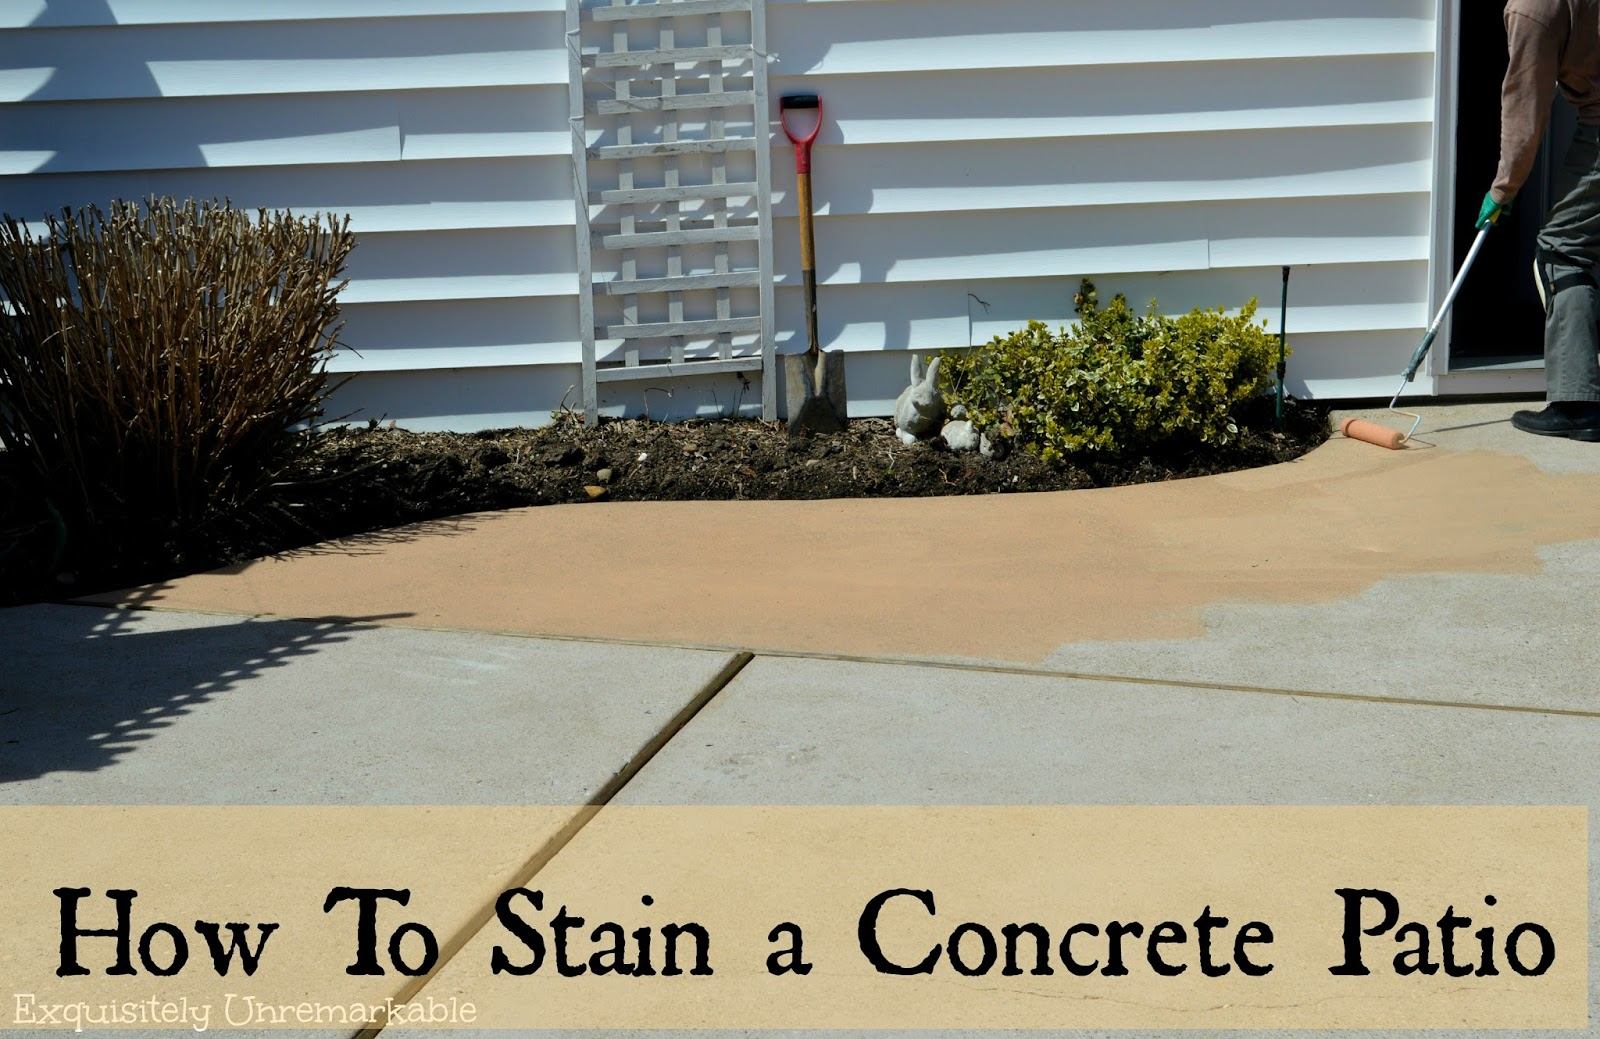 How To Stain A Concrete Patio Exquisitely Unremarkable